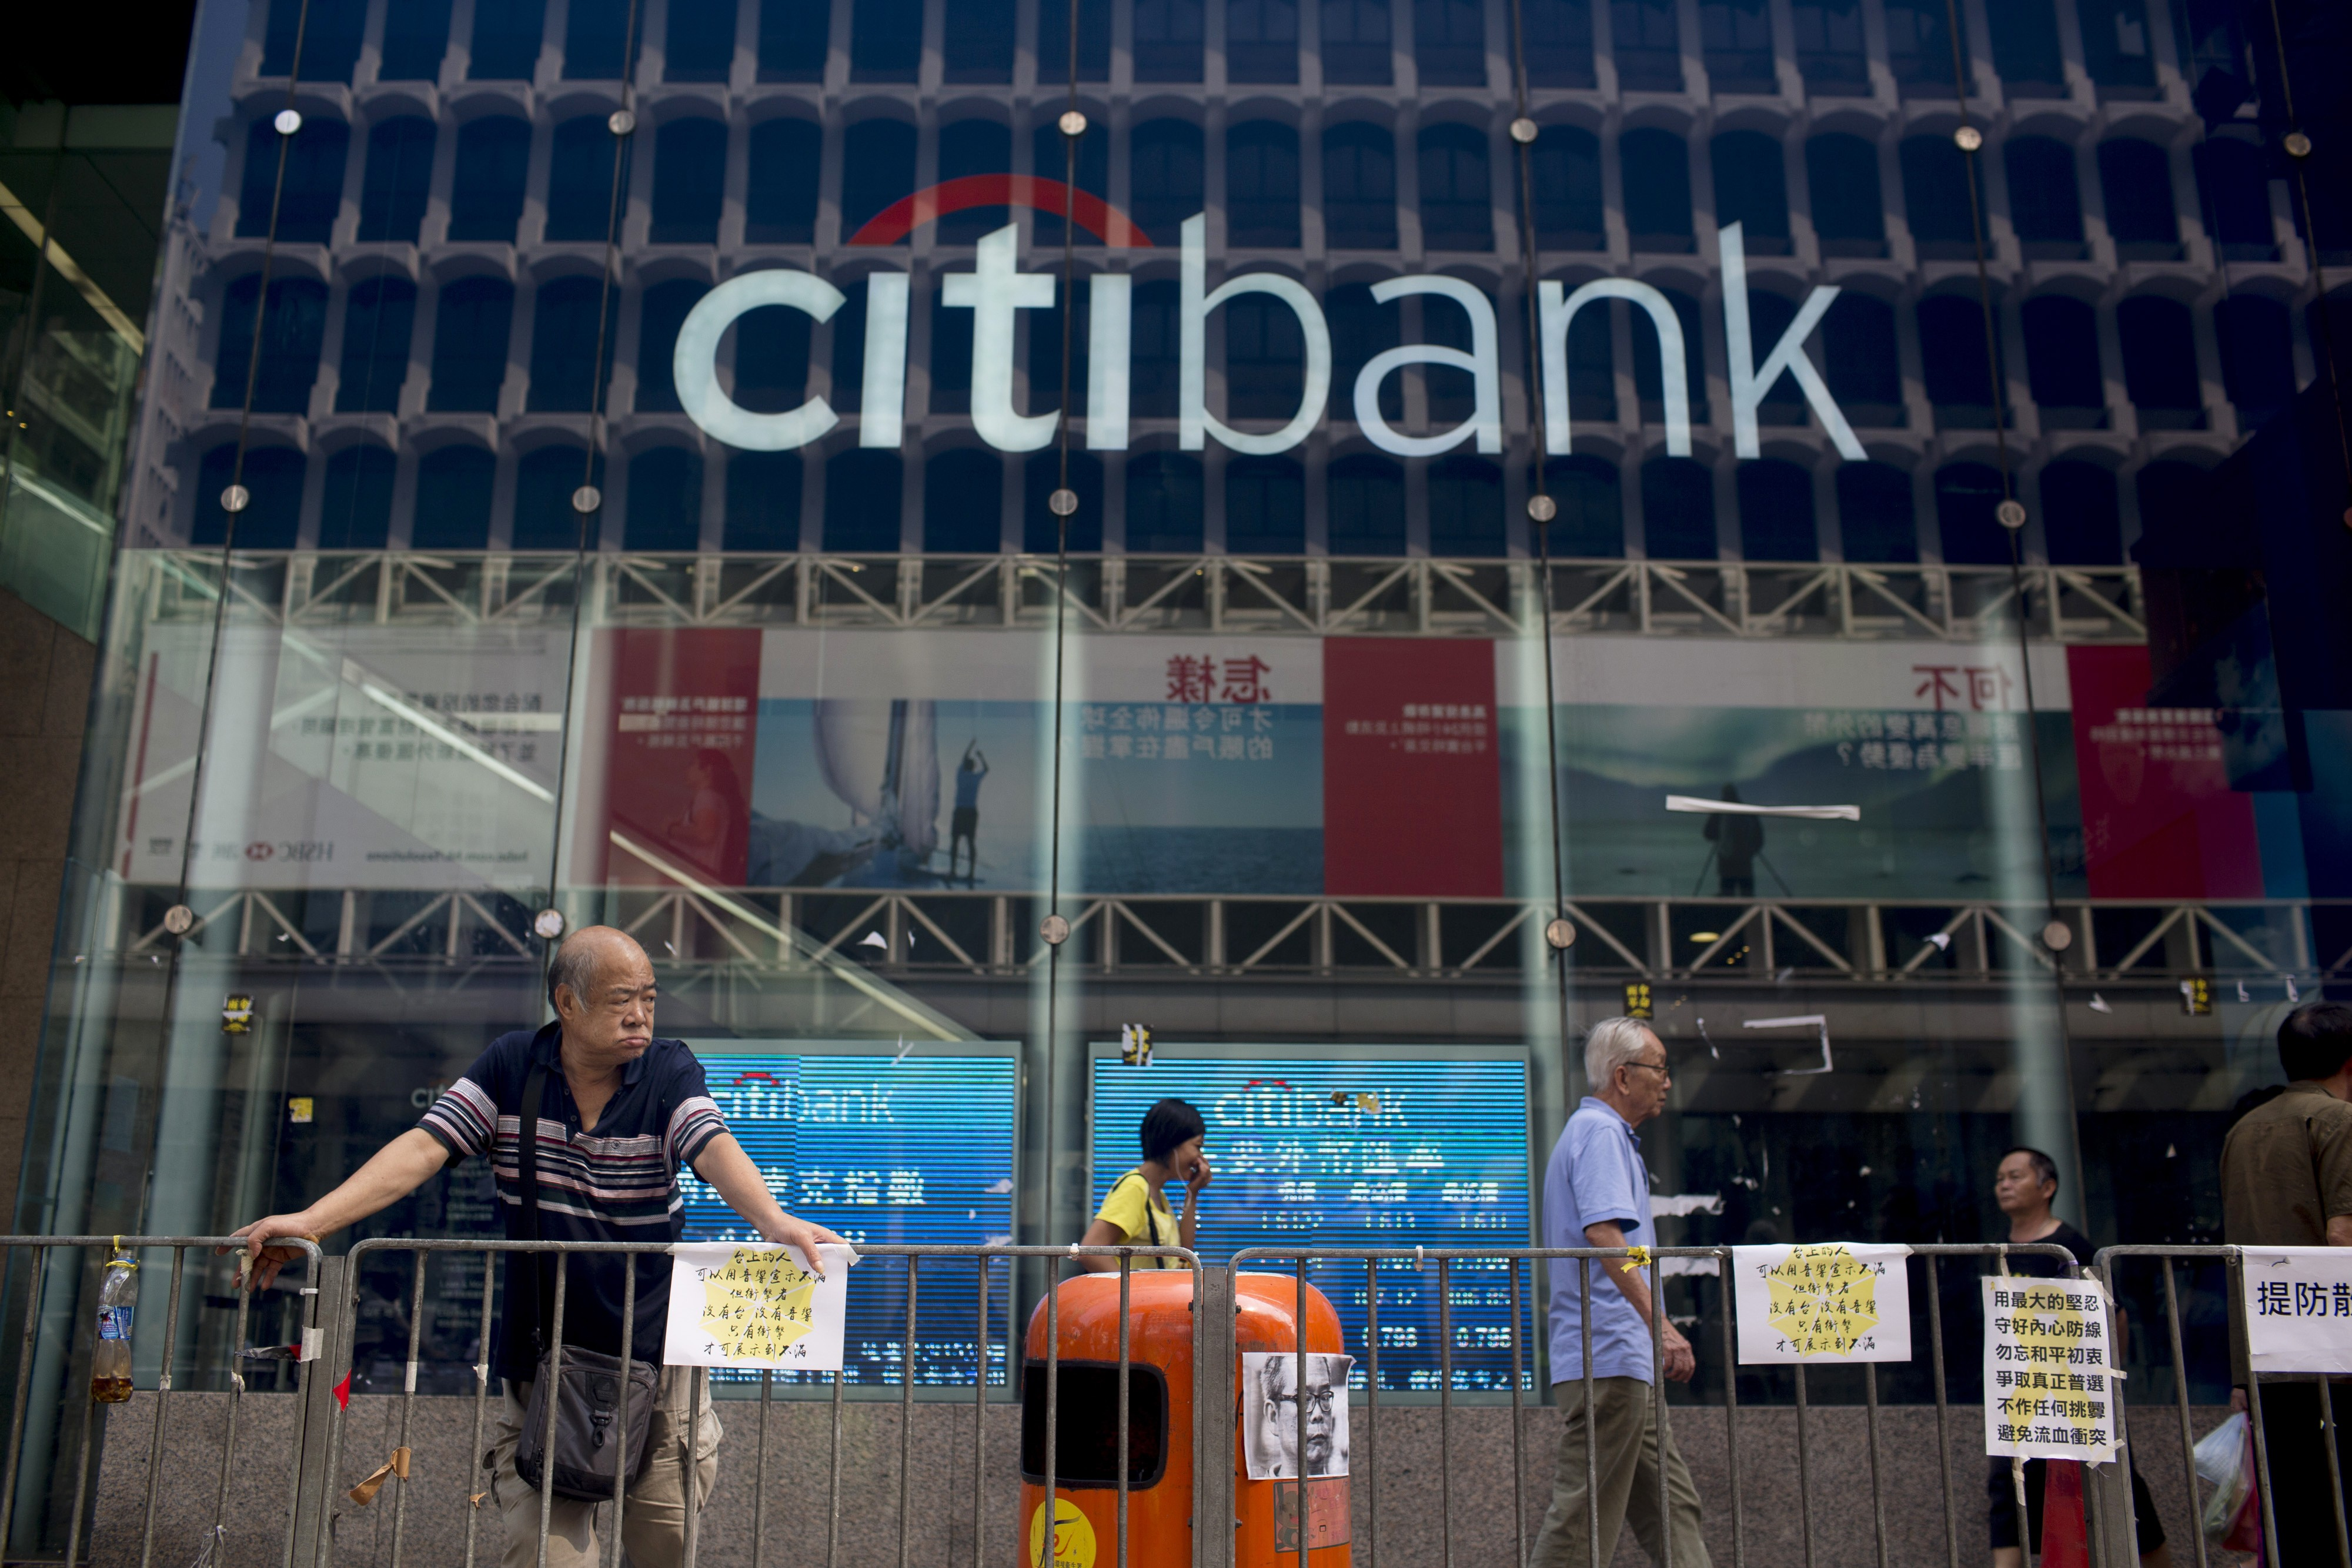 dda883683 Citigroup's golden strategy as banker to Fortune 500 companies tapping  China's belt and road corridors